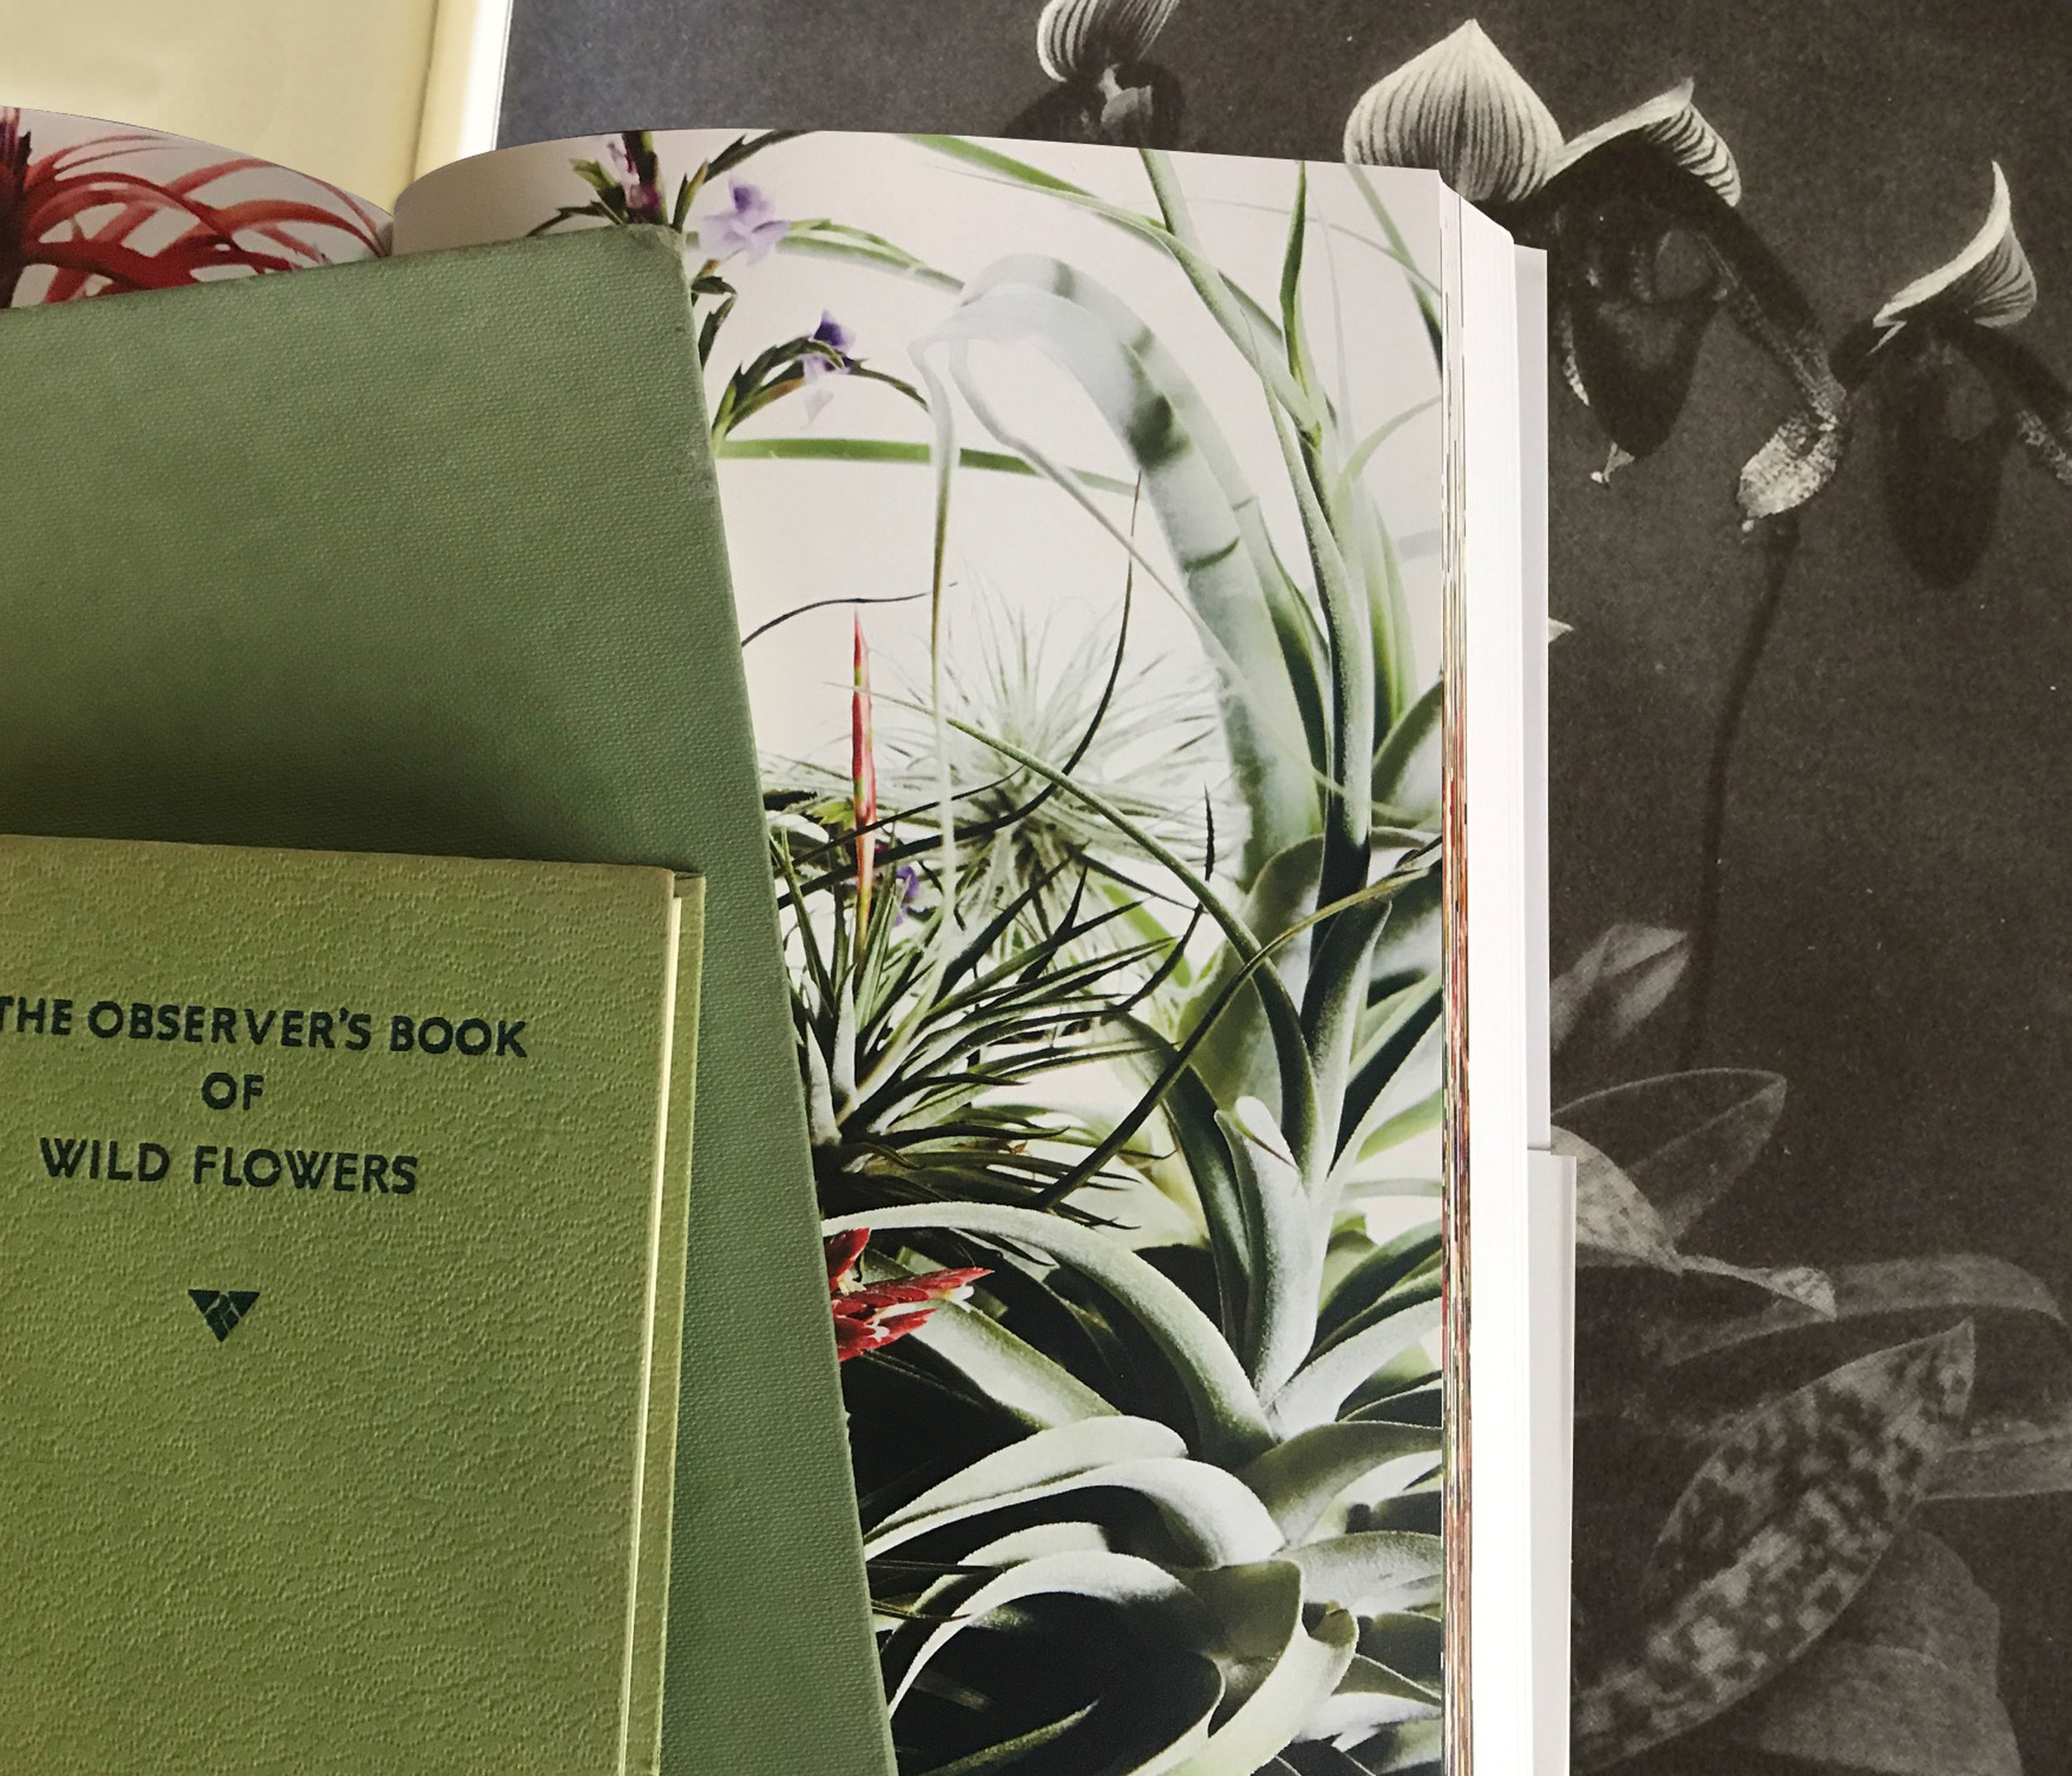 Appointment only, specialist book stores - UK  Offering hundreds of out of print books, filled with inspirational stories, individuals and field sketches, as well as more recent artist interpretations of the natural world.